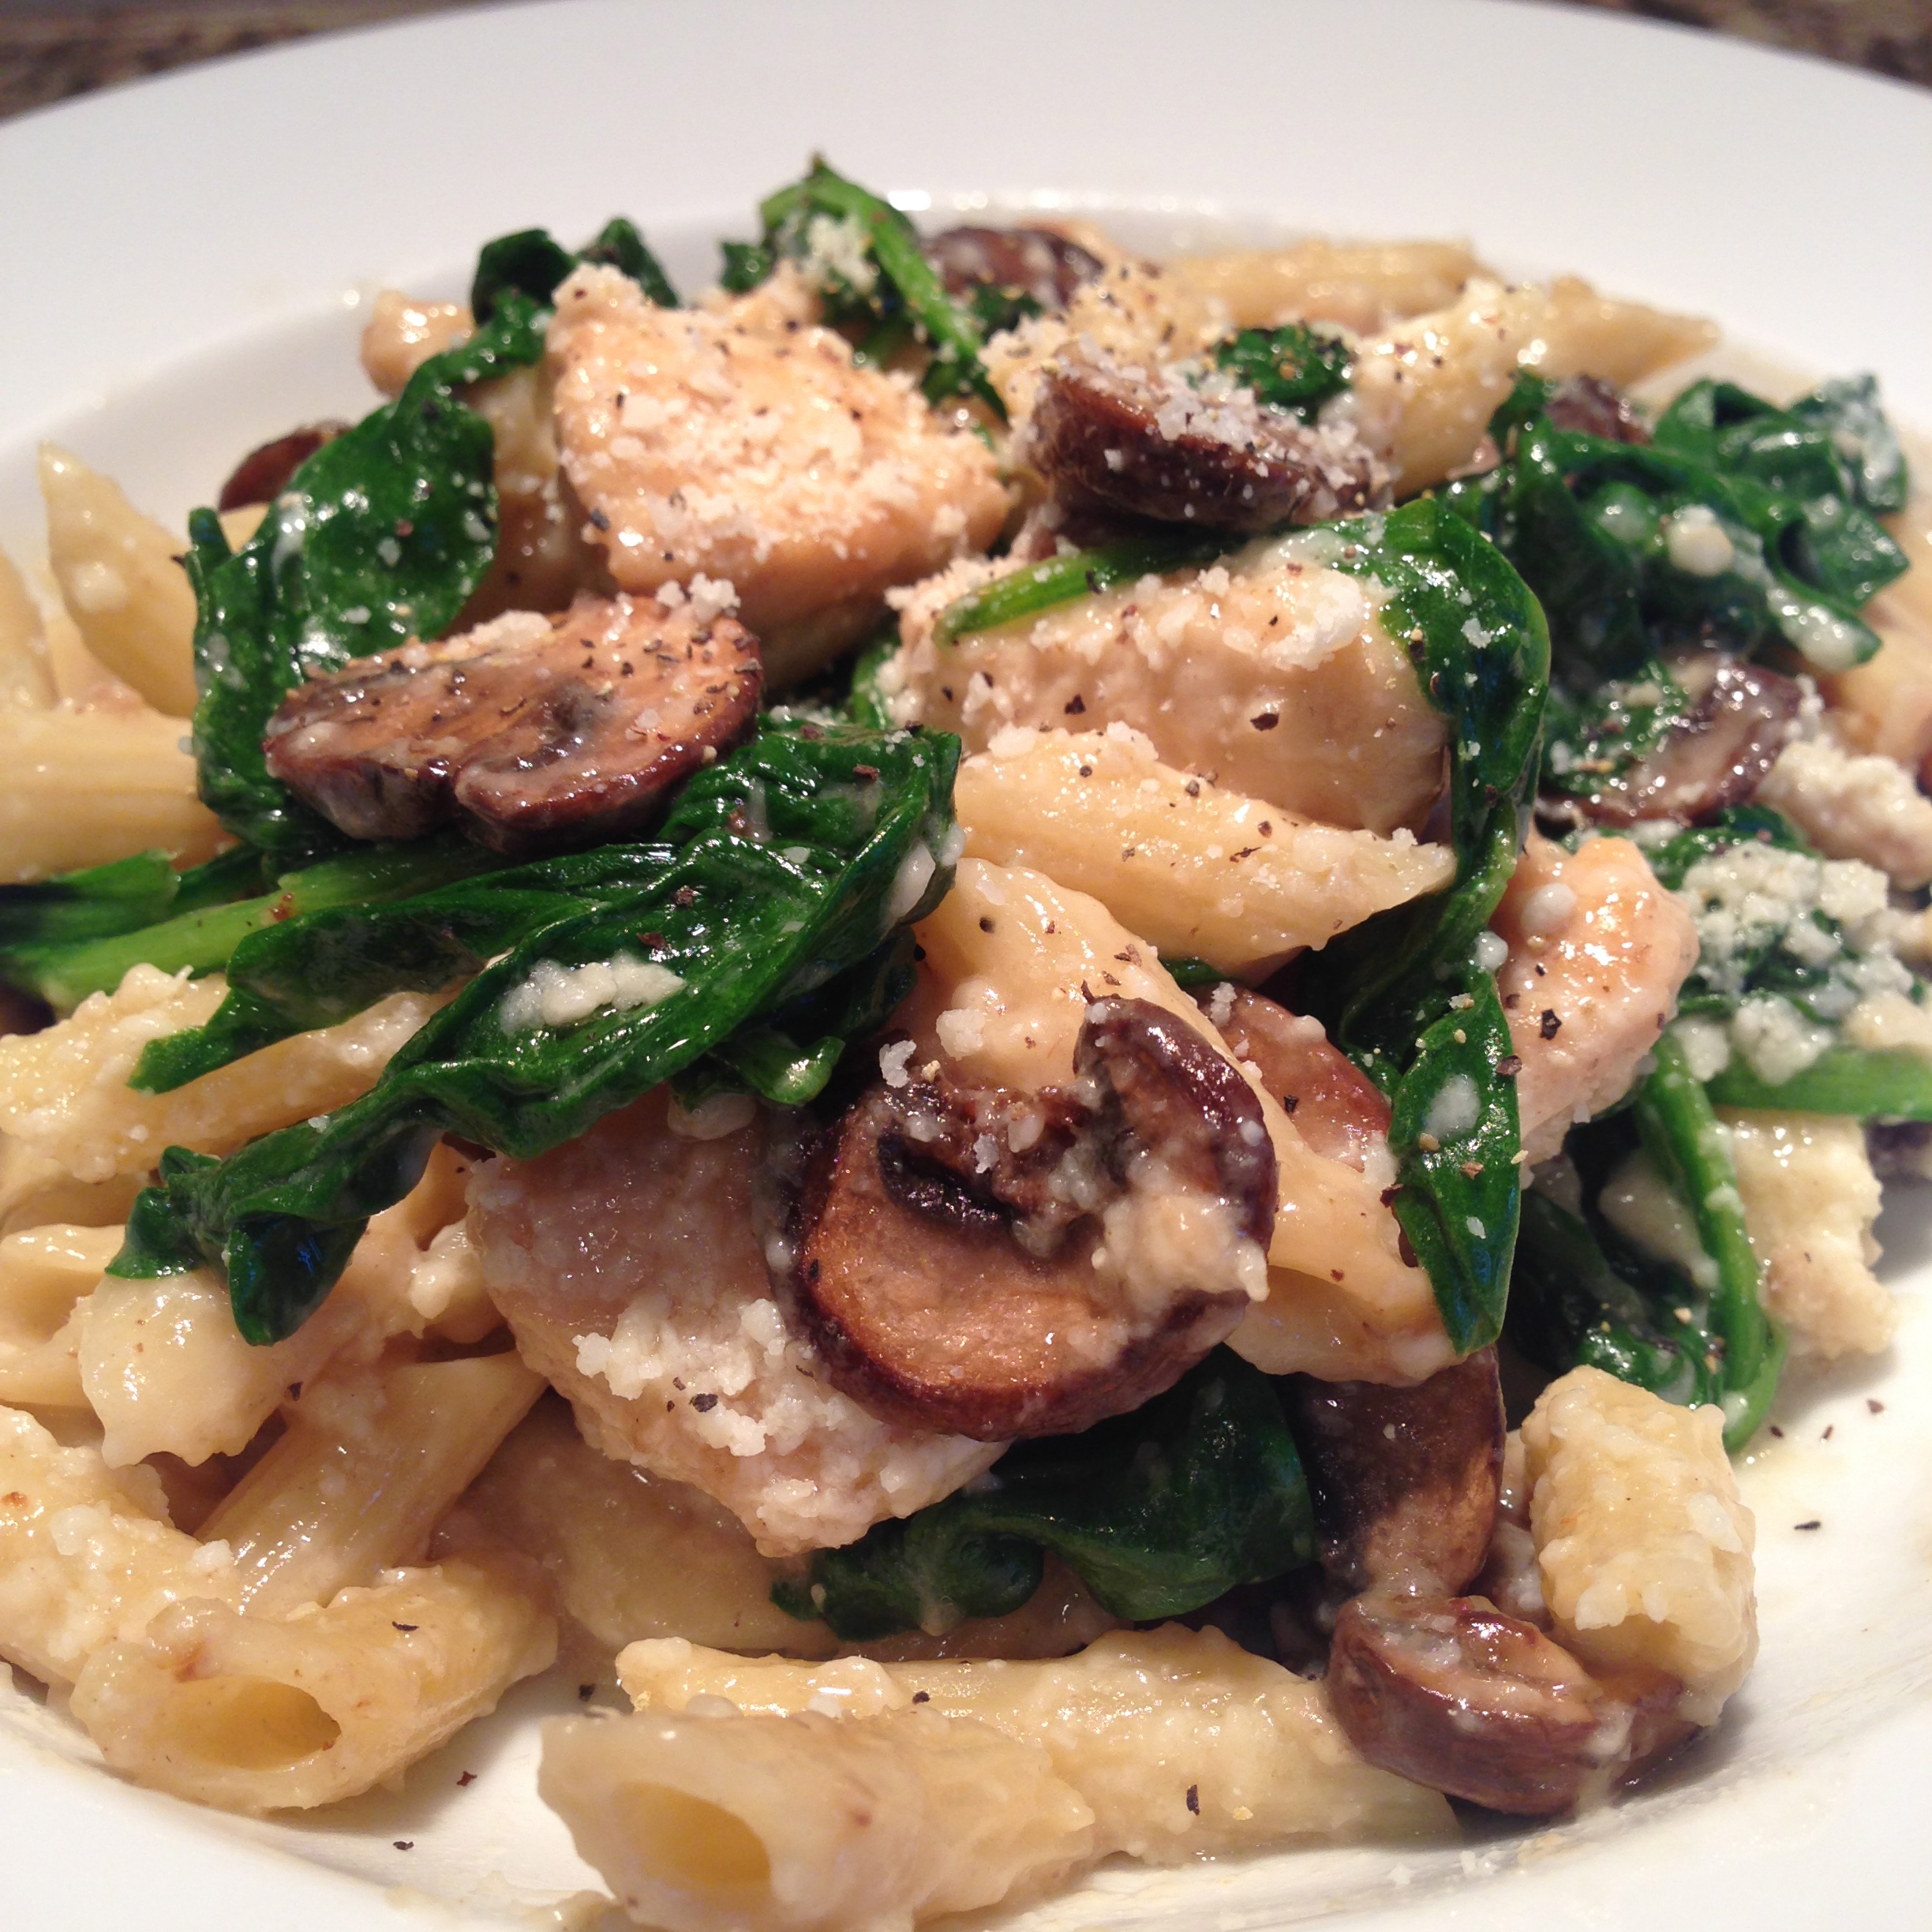 Mushroom, Spinach, and Chicken Pasta Dinner